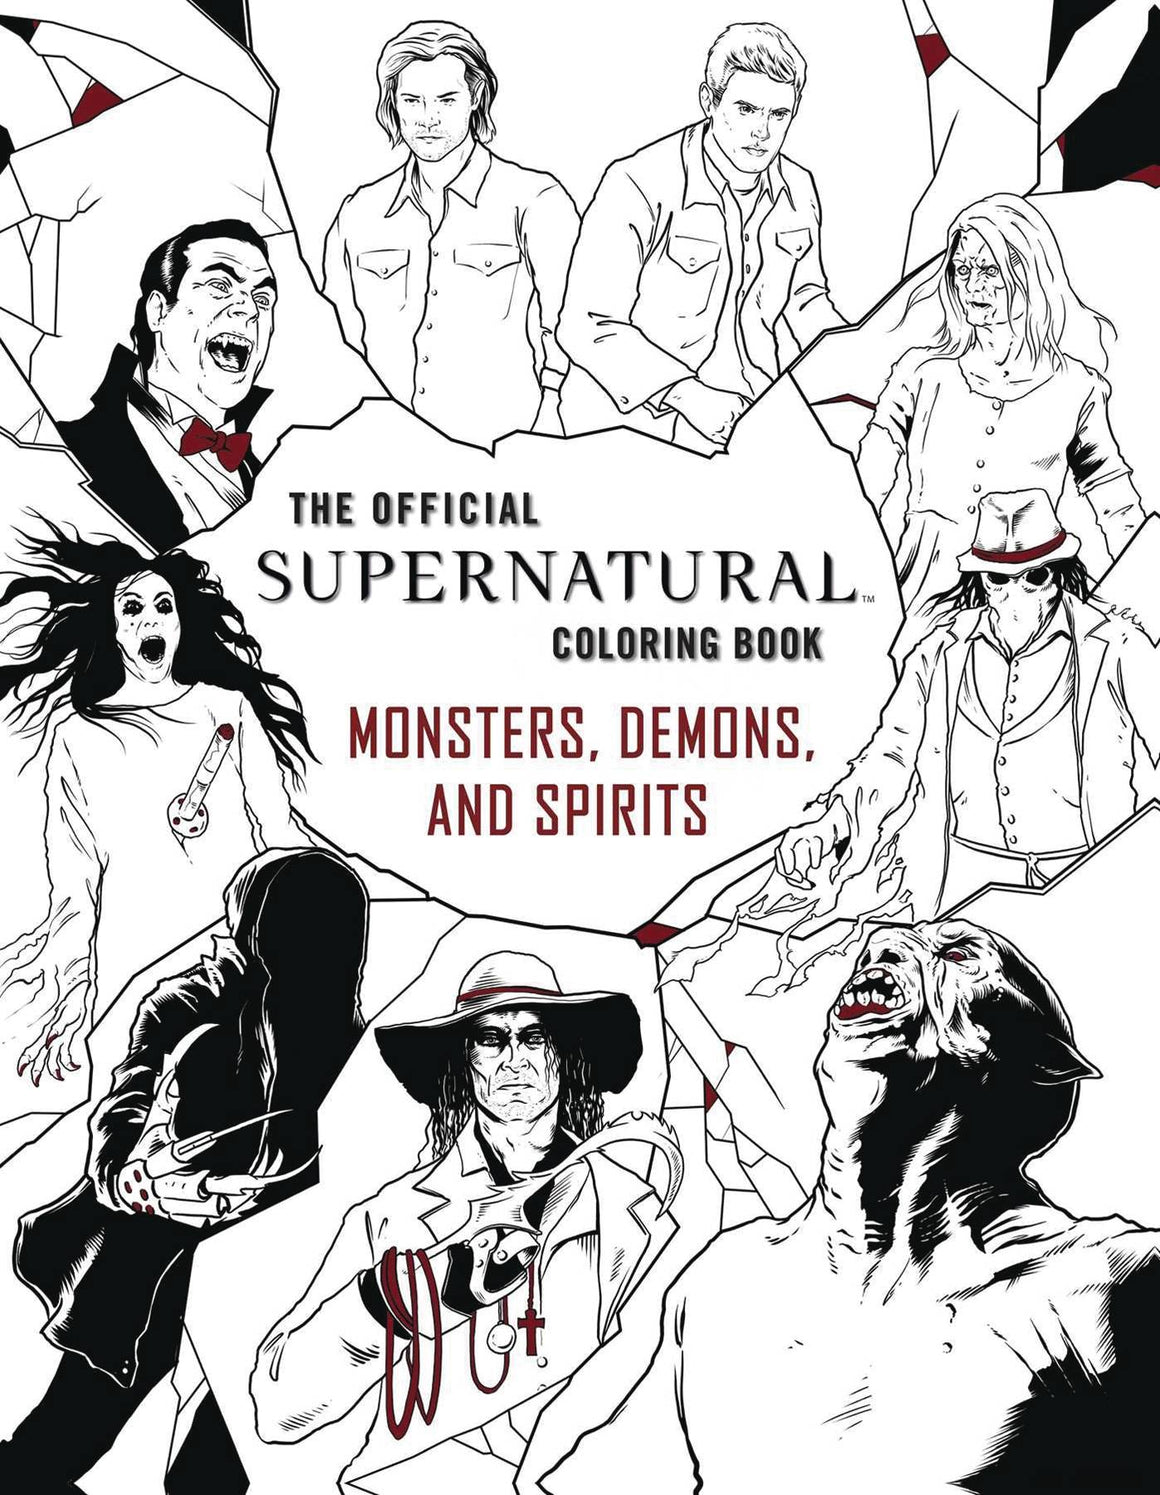 OFFICIAL SUPERNATURAL COLORING BOOK SC MONSTERS DEMONS SPIRITS